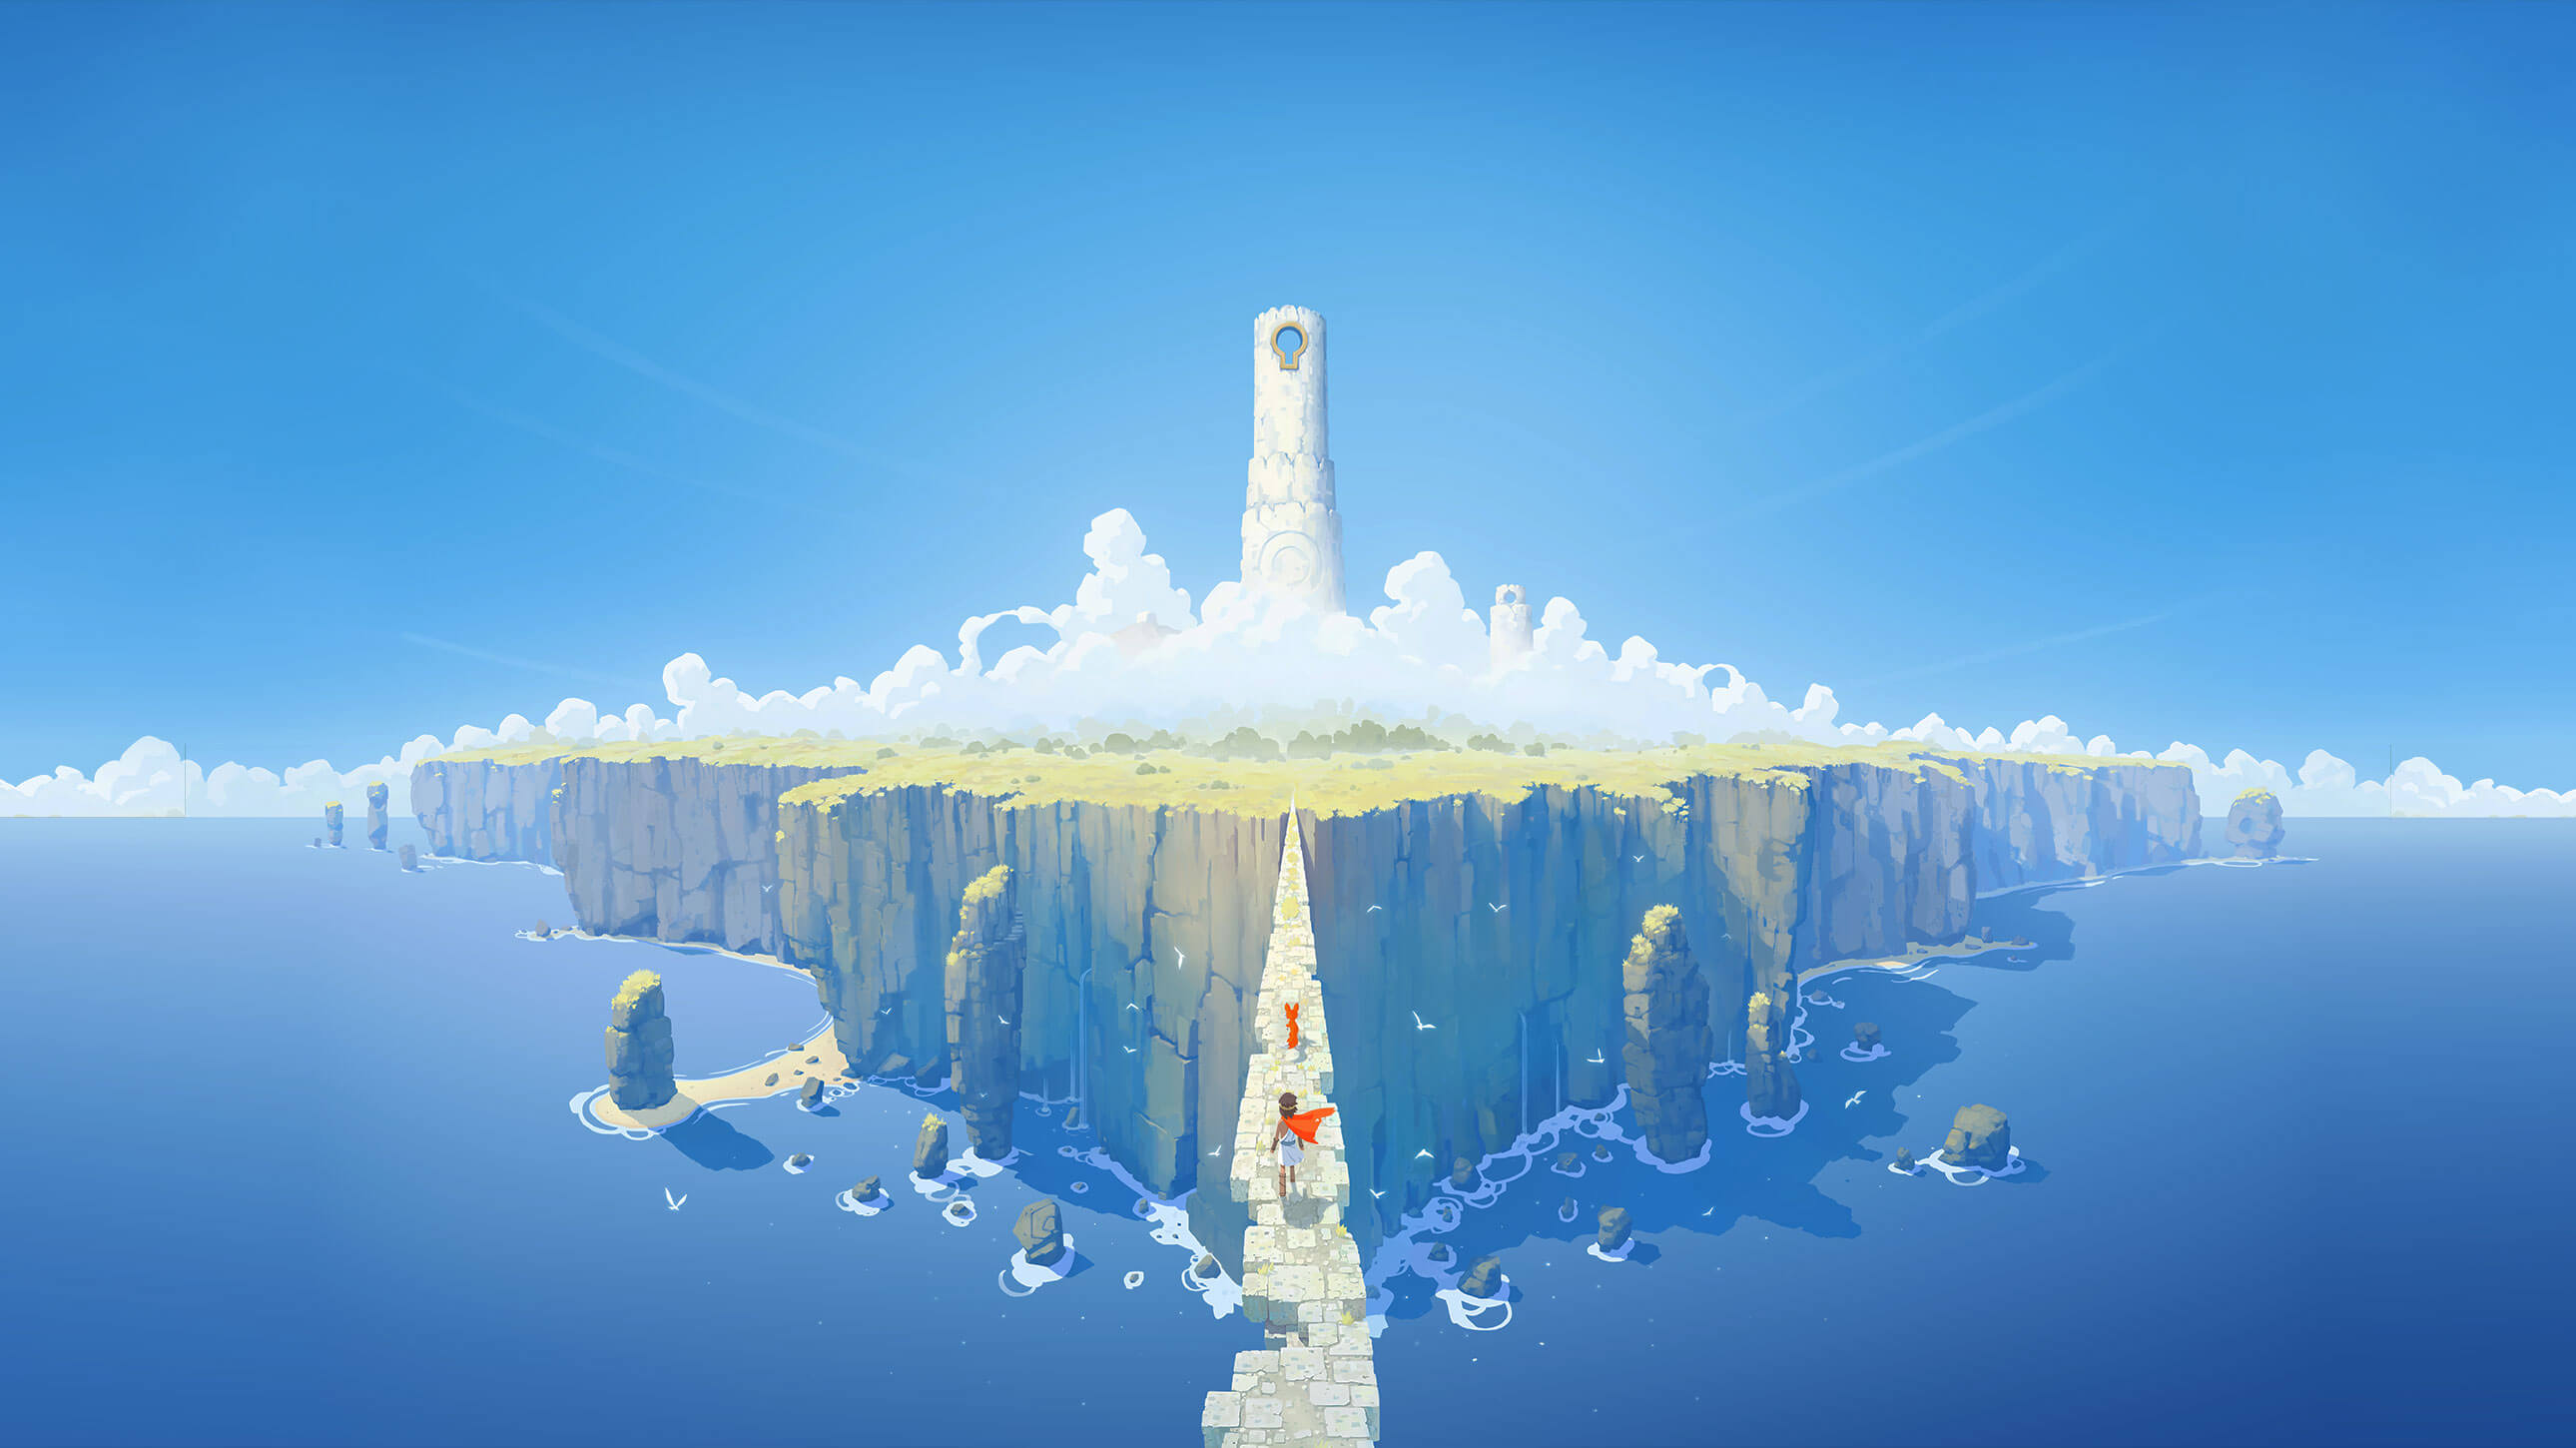 RiME - Explore the beautiful yet rugged world of RiME